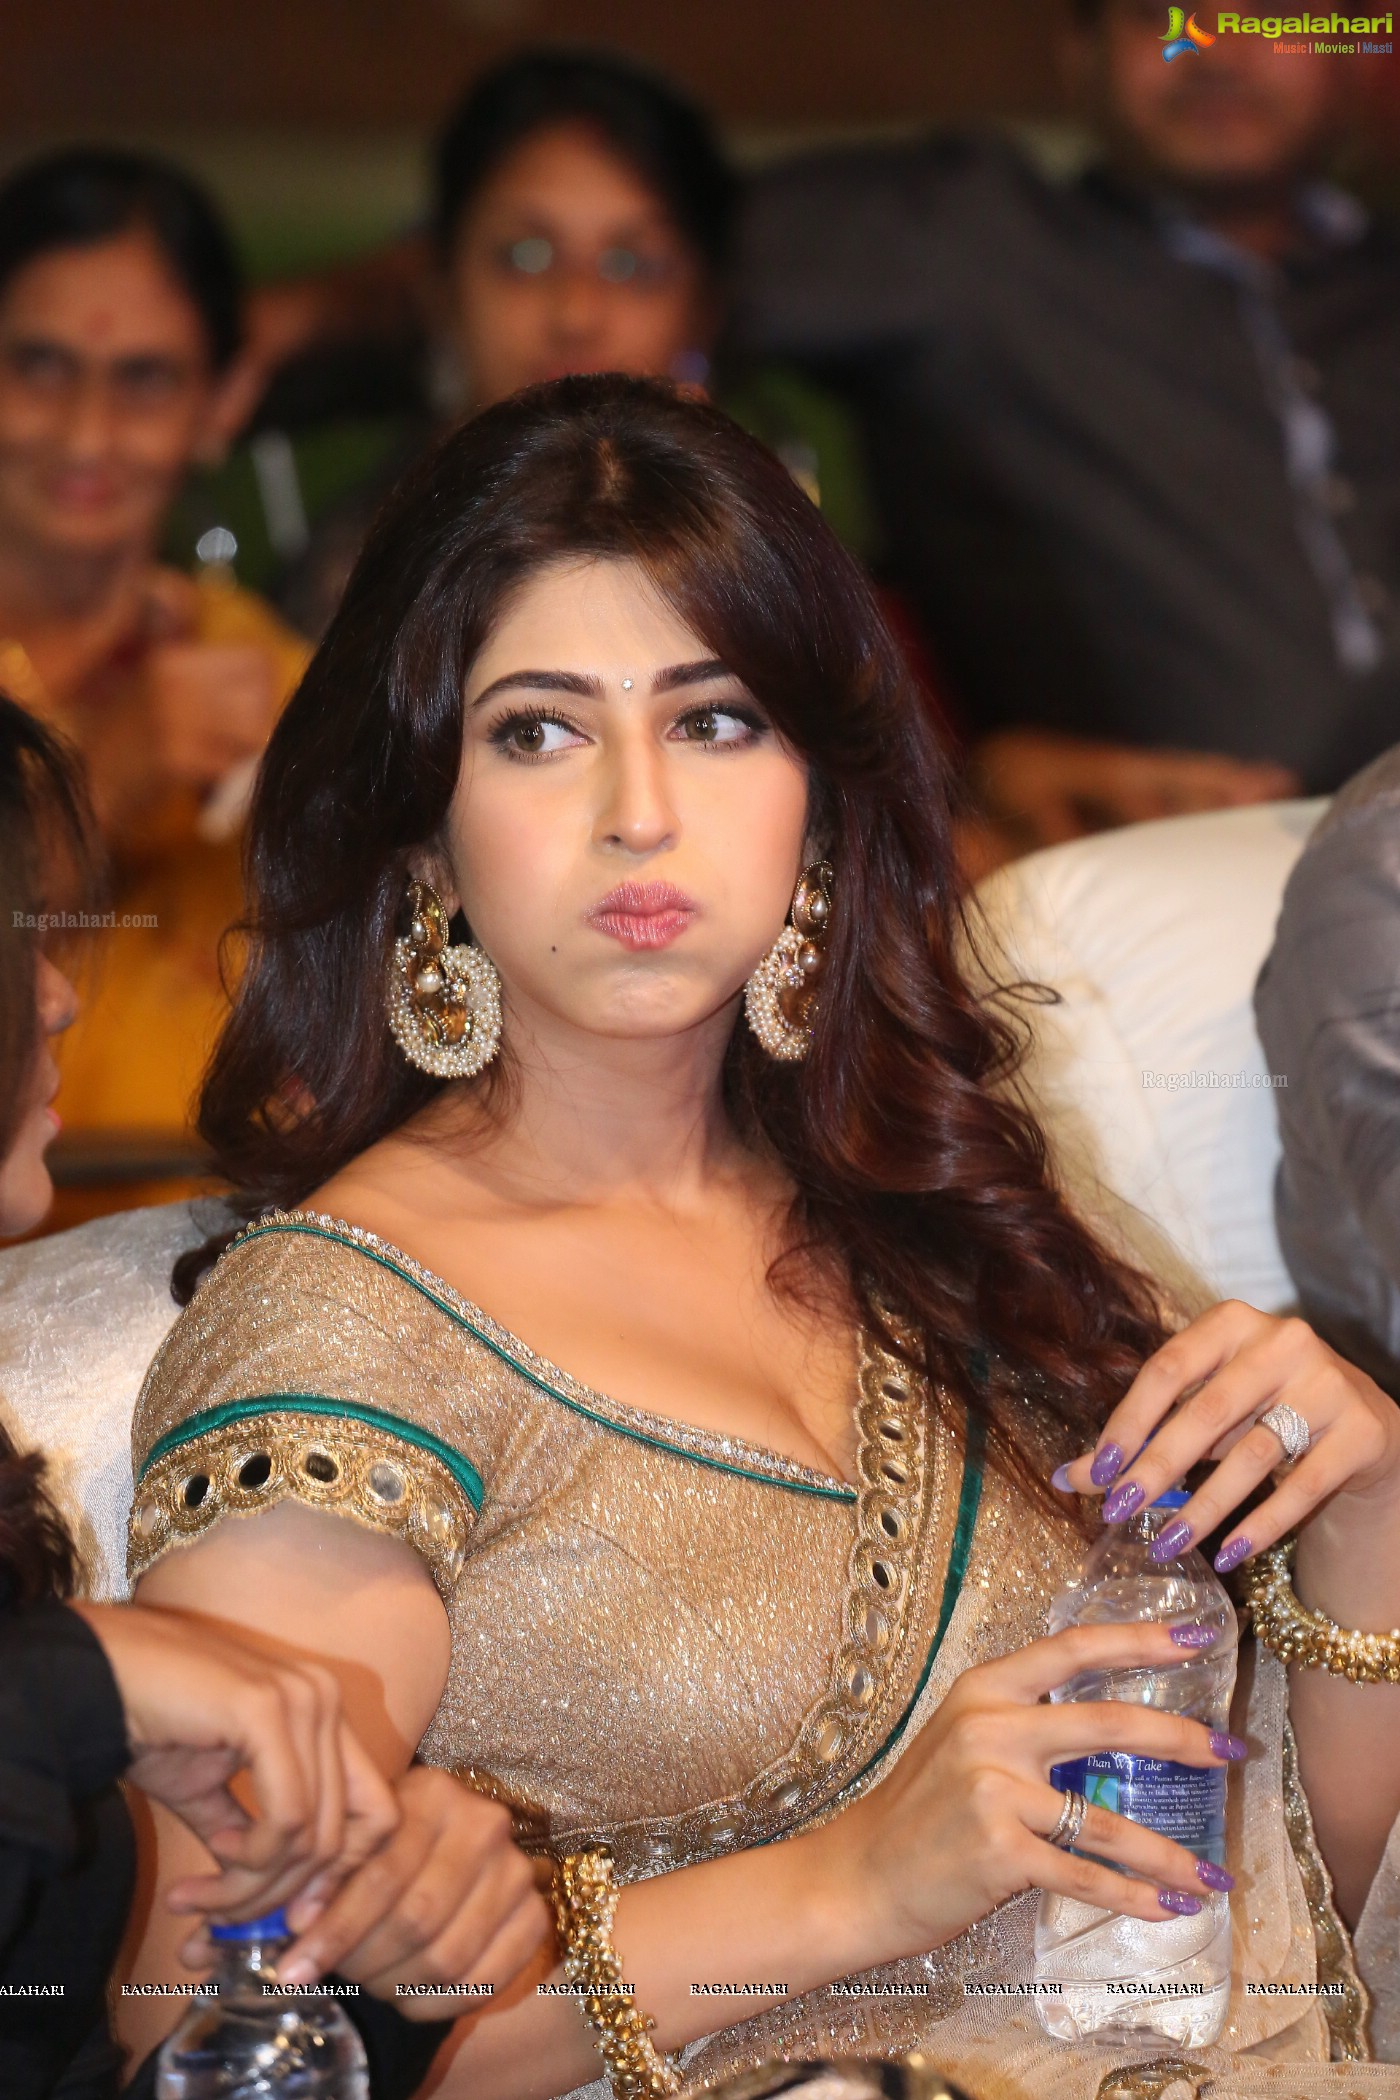 Thought differently, Sonarika cum